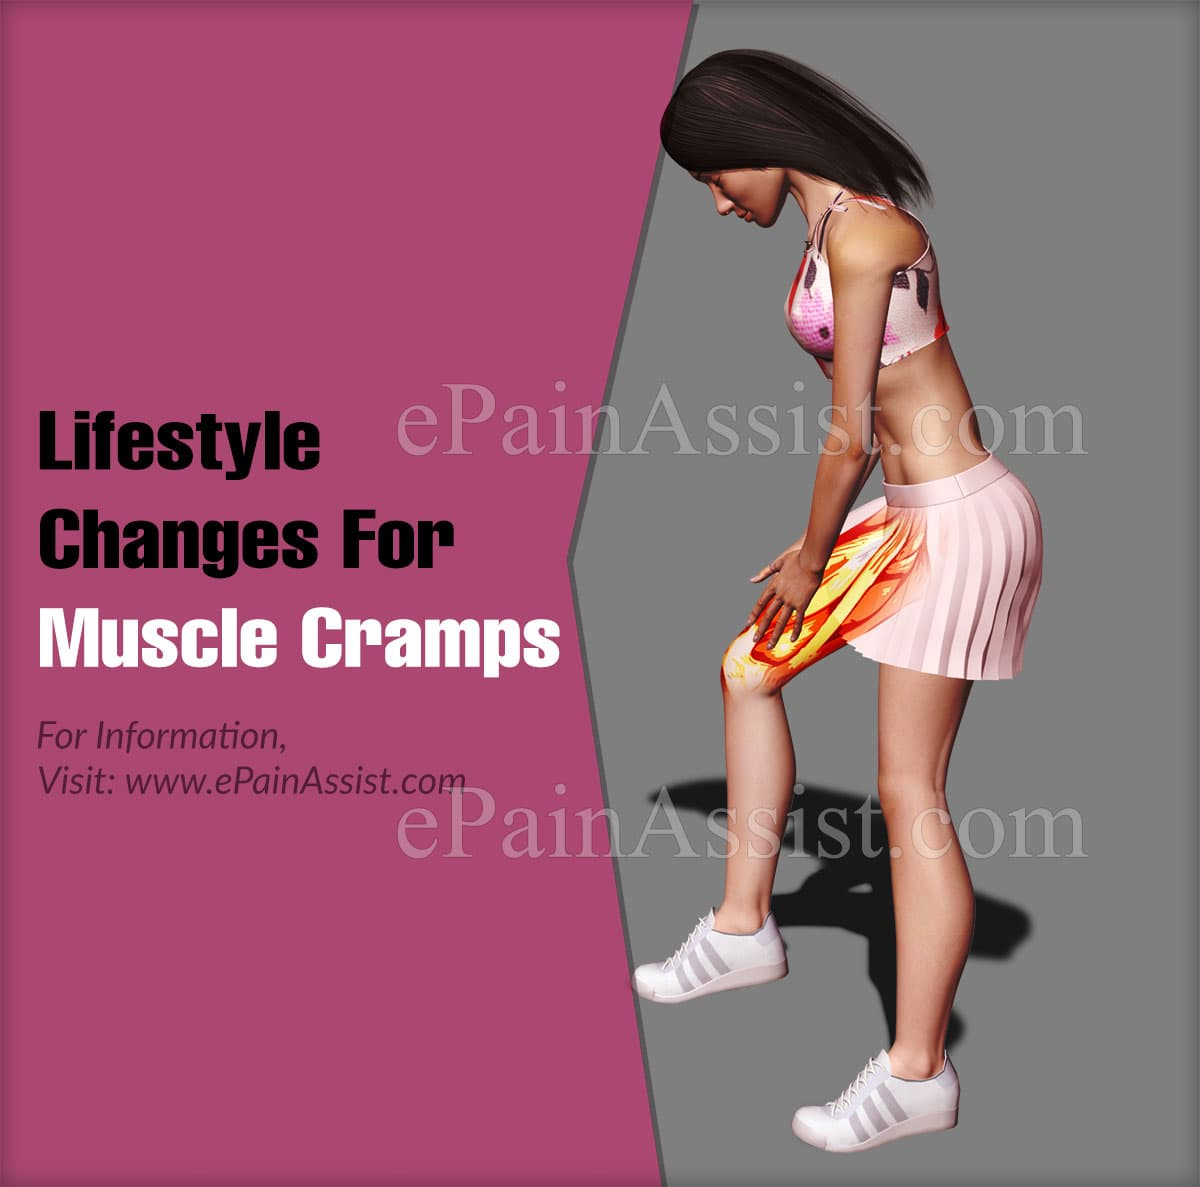 Lifestyle Changes For Muscle Cramps